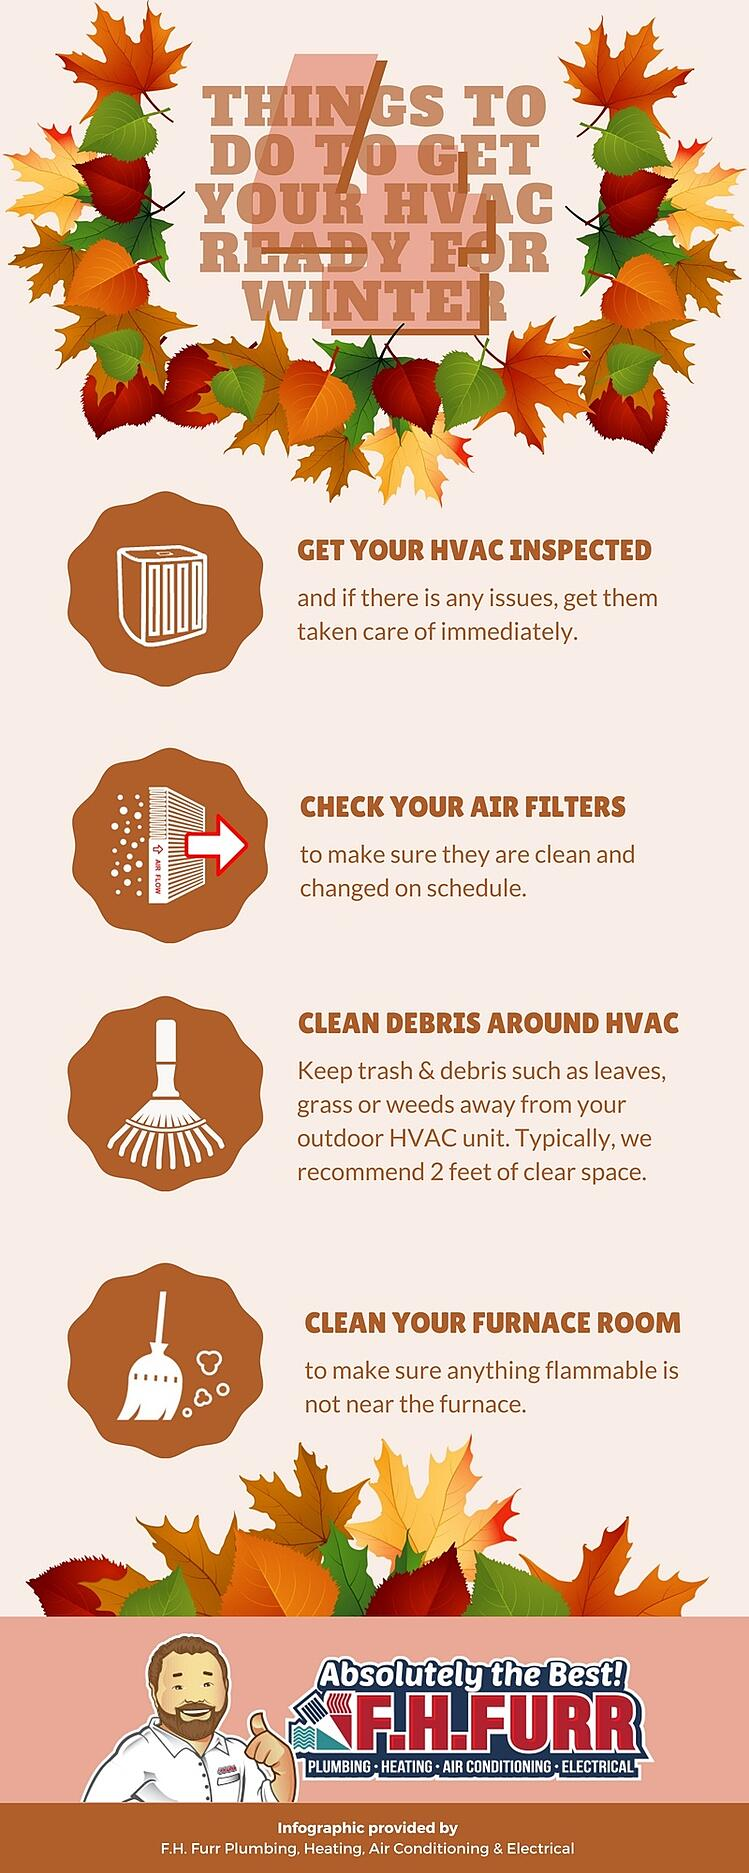 4 Ways To Get Your Furnace Ready For Winter.jpg